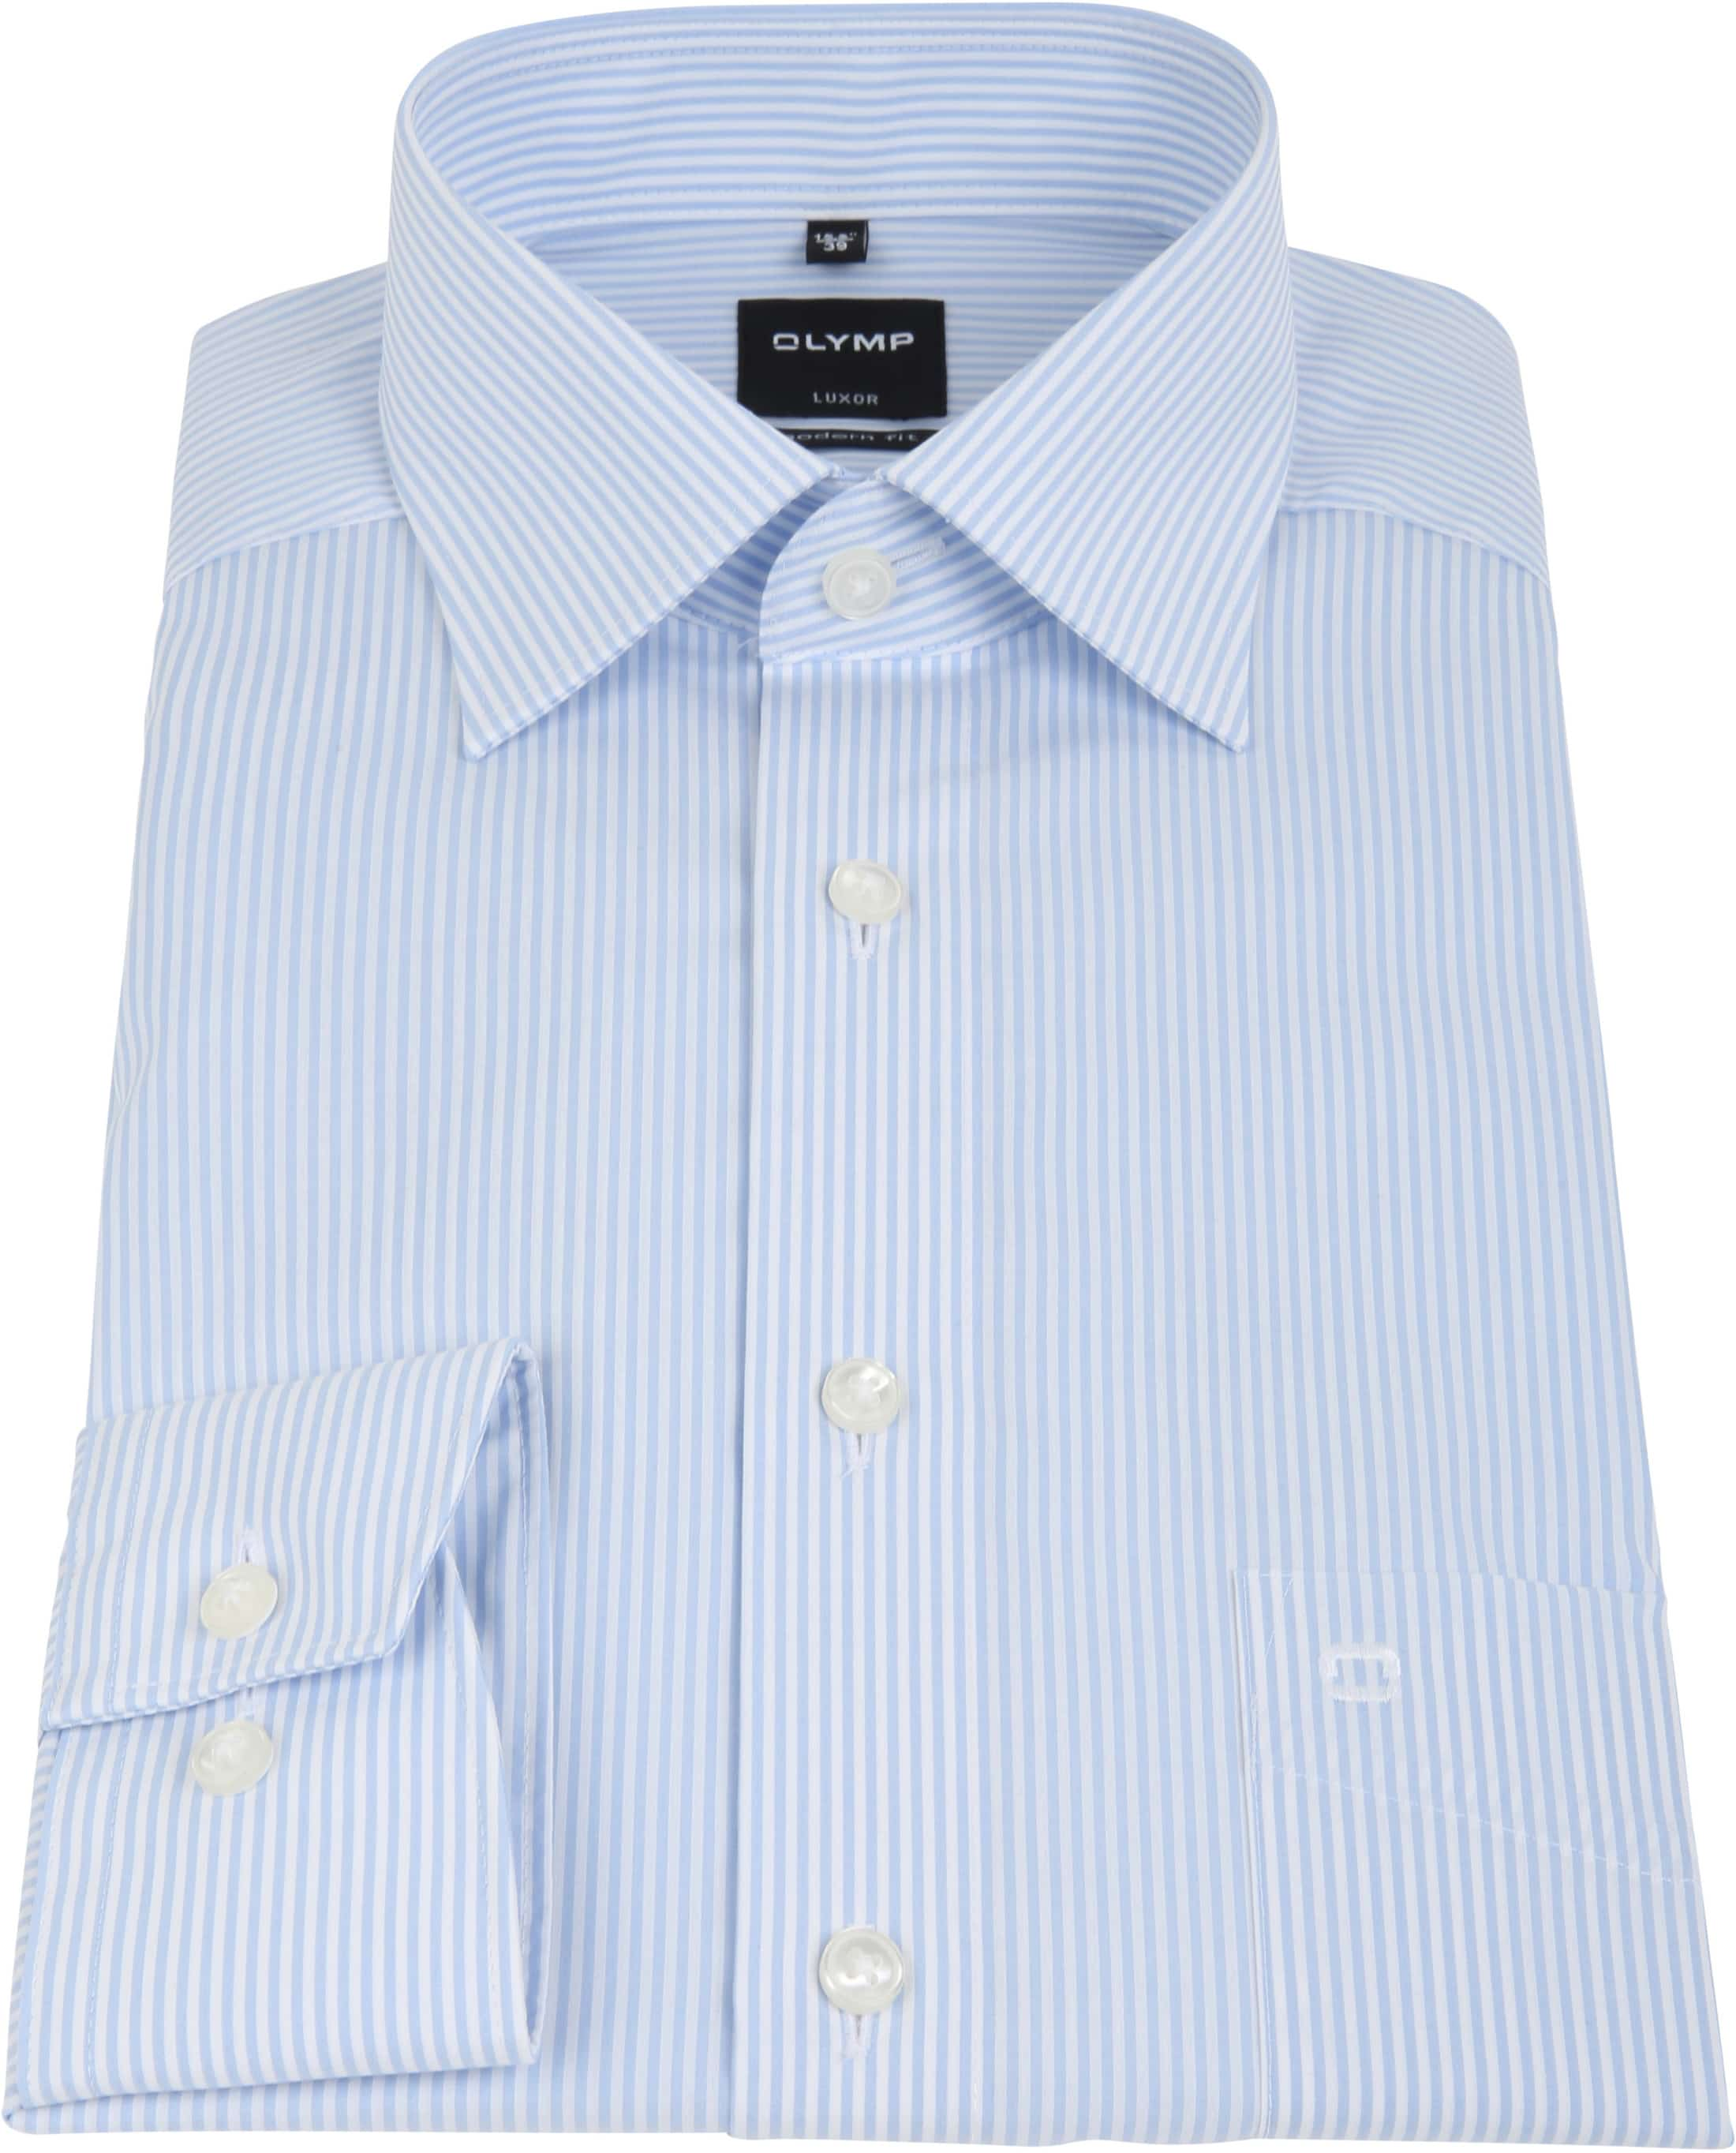 Olymp Luxor Shirt Light Blue Striped foto 2